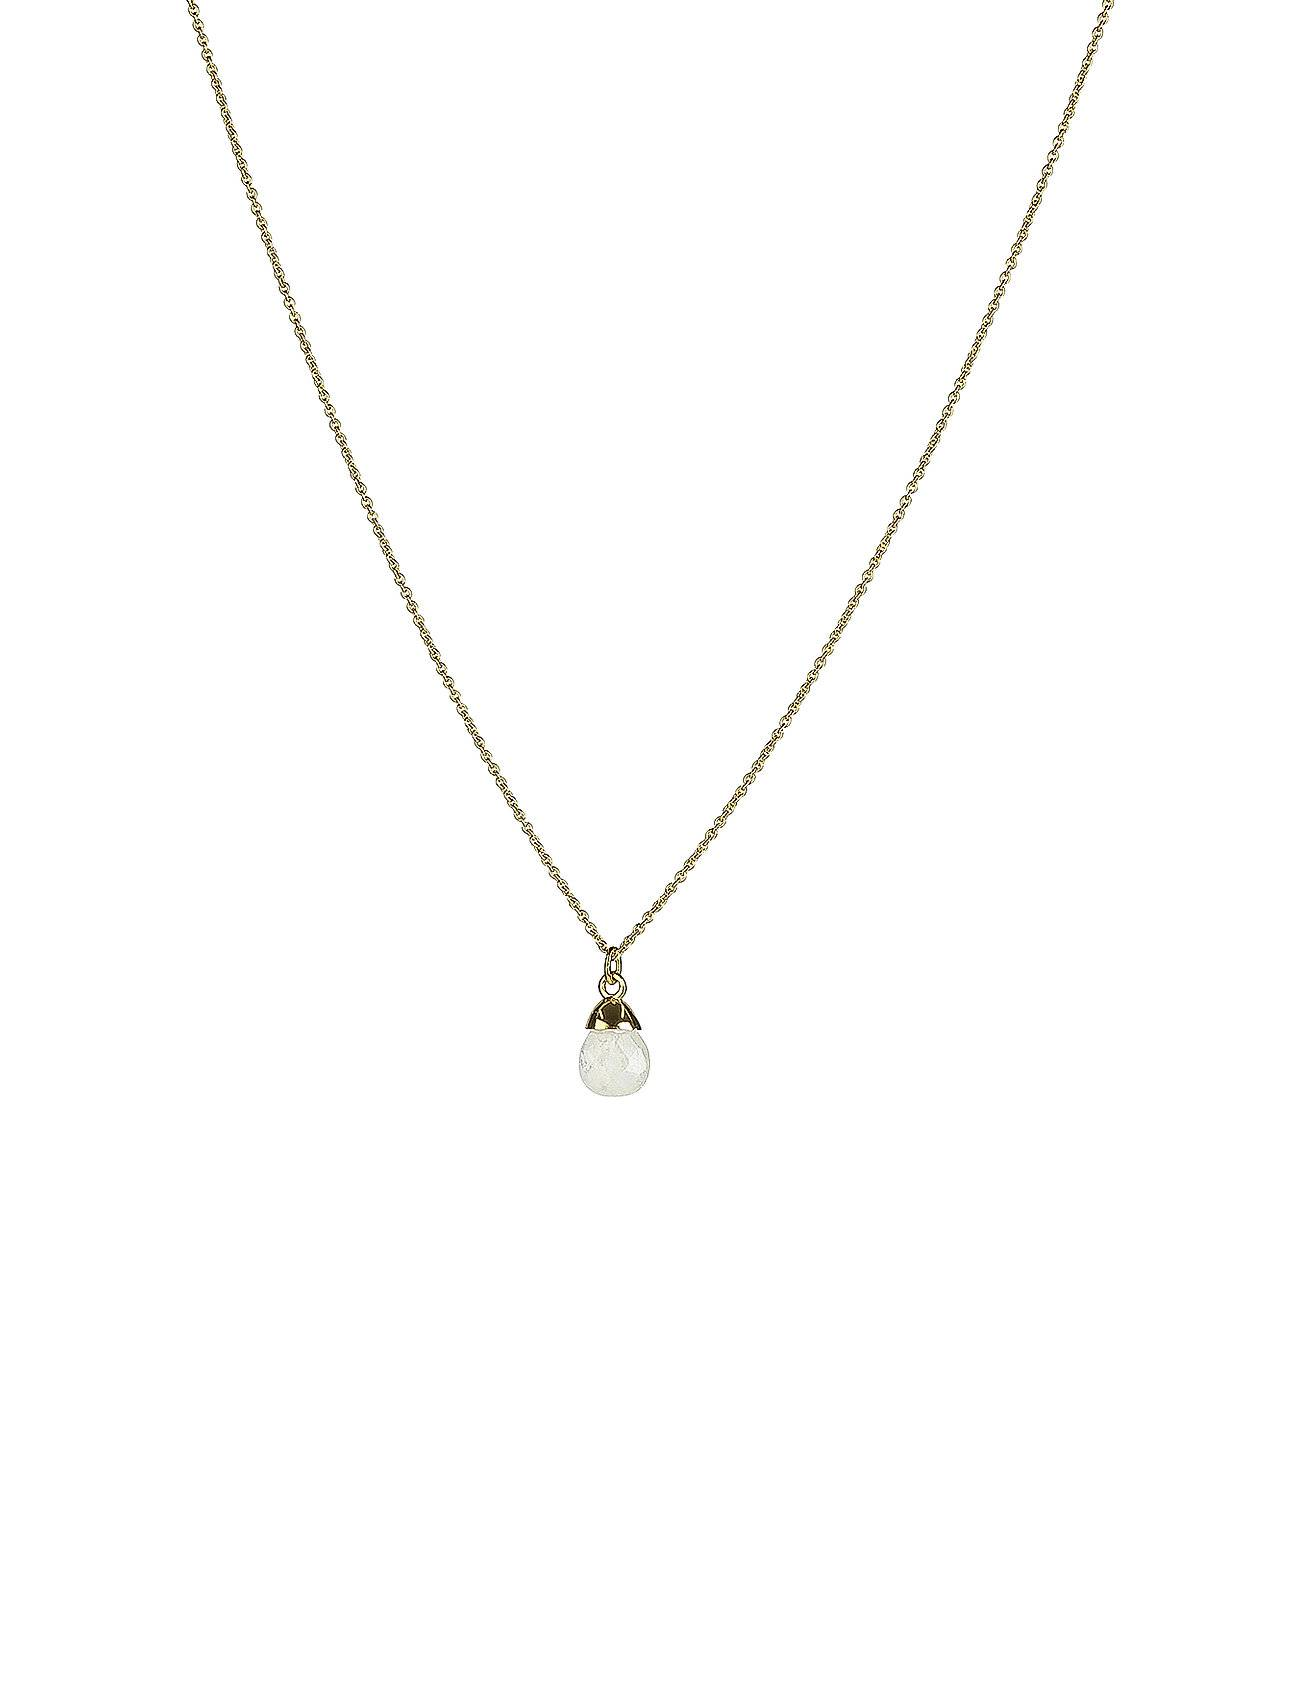 Syster P Mini Teardrop Necklace Gold Accessories Jewellery Necklaces Dainty Necklaces Kulta Syster P